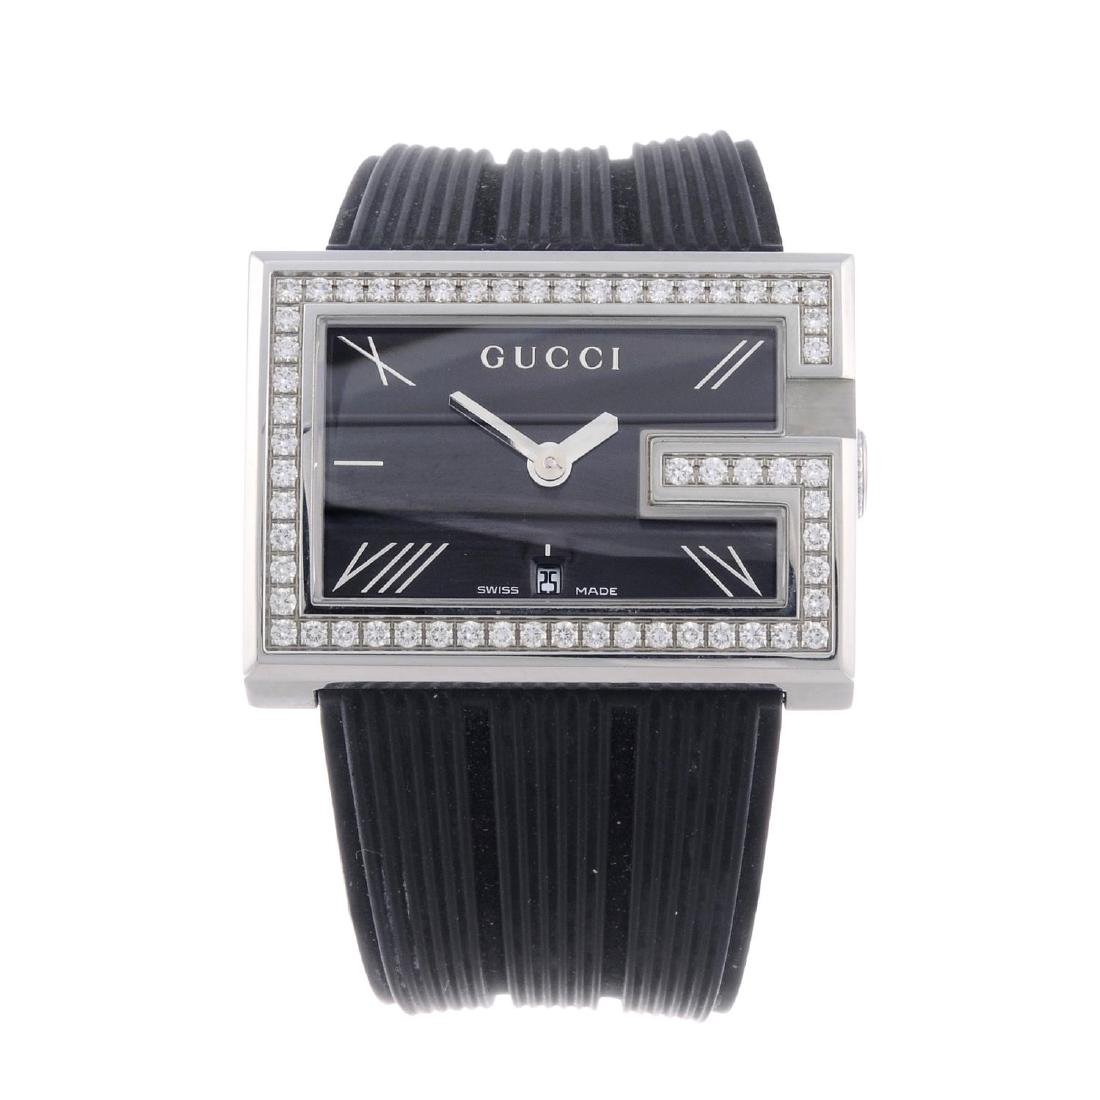 GUCCI - a lady's 235 wrist watch. Stainless steel case